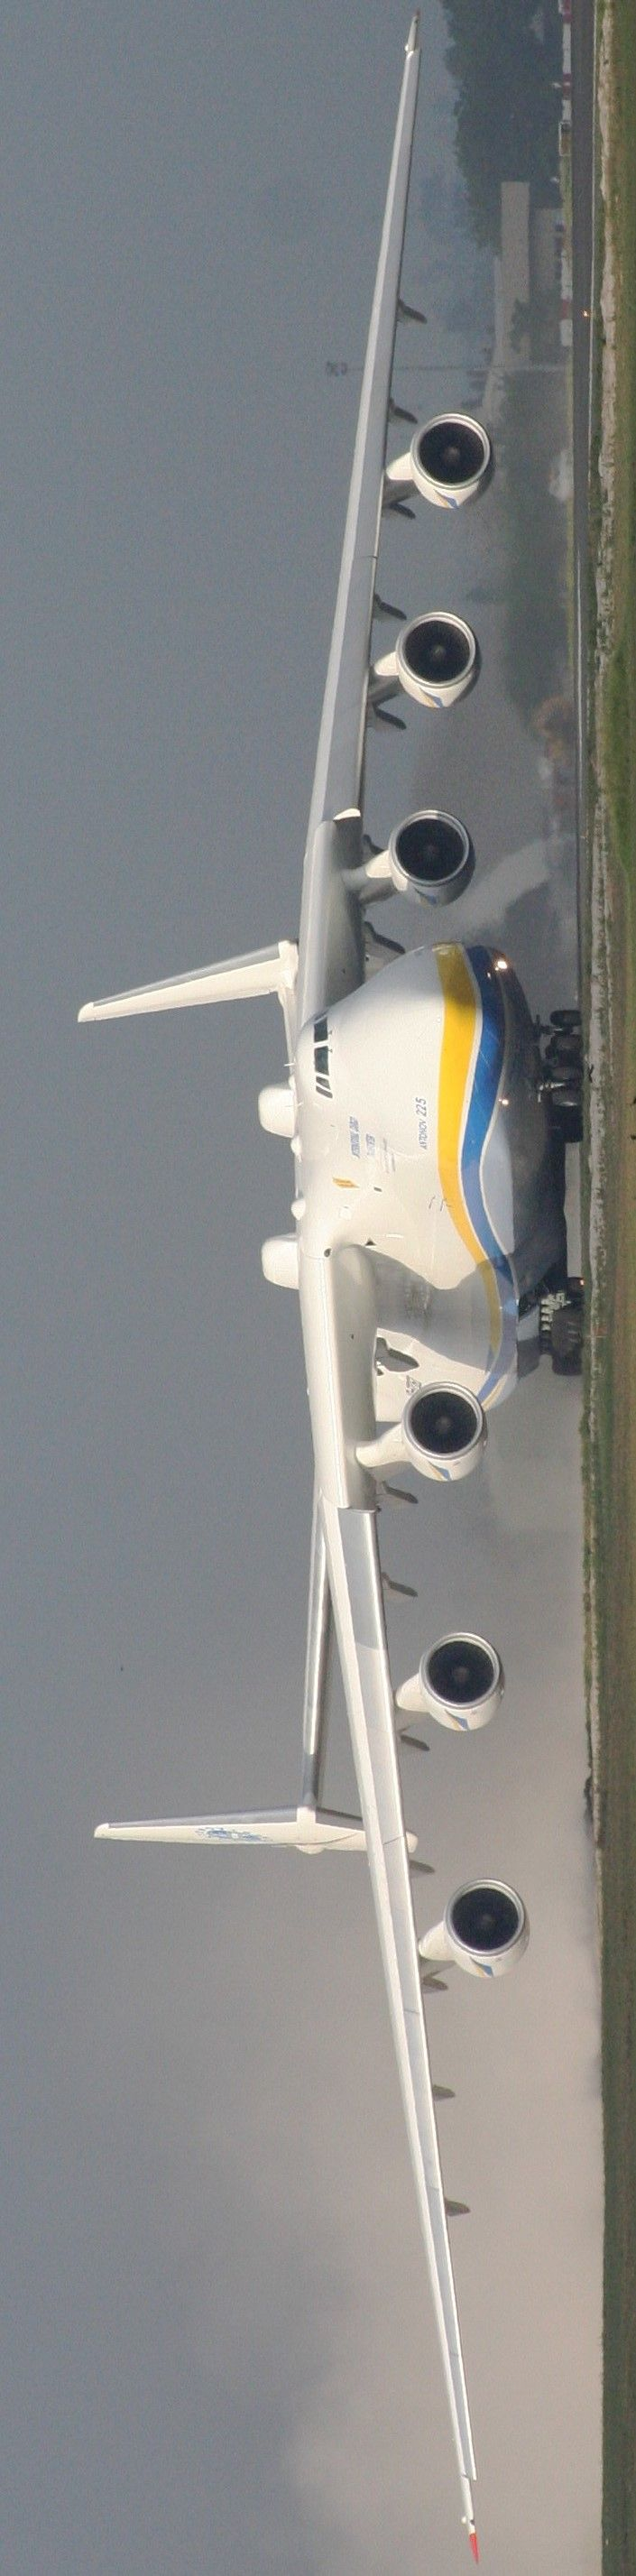 Ukrainian Antonov a massive monster, It is powered by six turbofan engines and is the largest airplane in the world; it is the heaviest aircraft with a maximum takeoff weight of 640 tonnes: Airplanes Jets, Engine, Jets Planes Aircraft, Aircraft, Airplanes